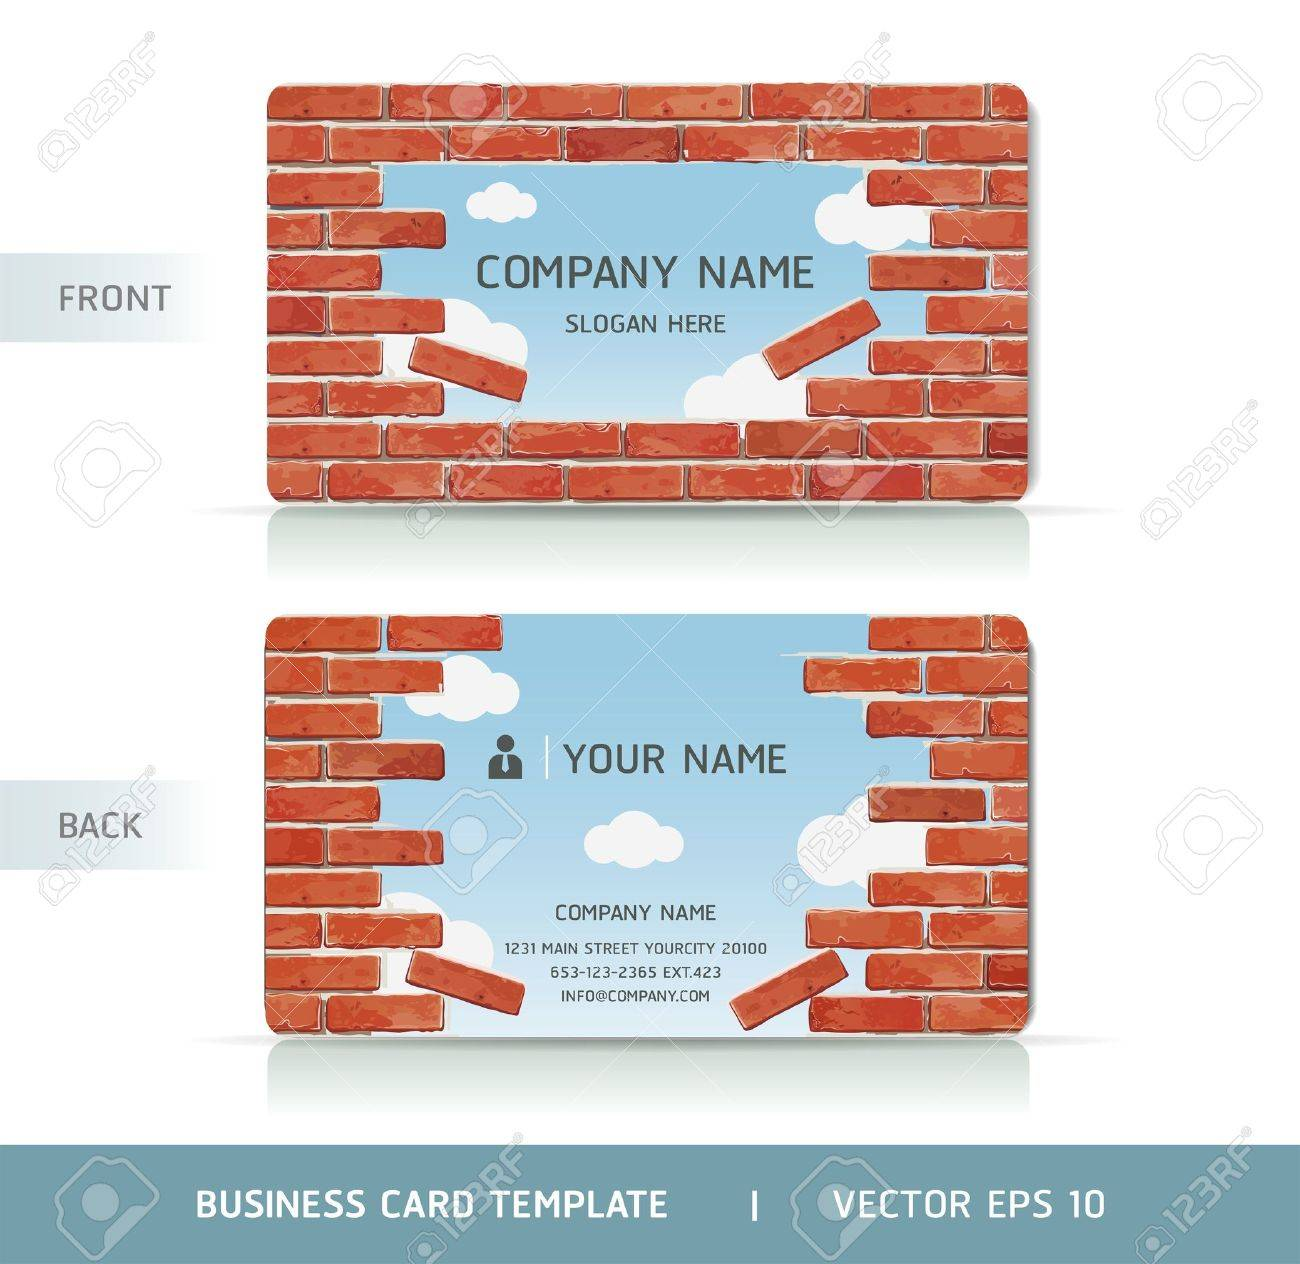 Red Brick Wall Business Card . Vector illustration Stock Vector - 18759380